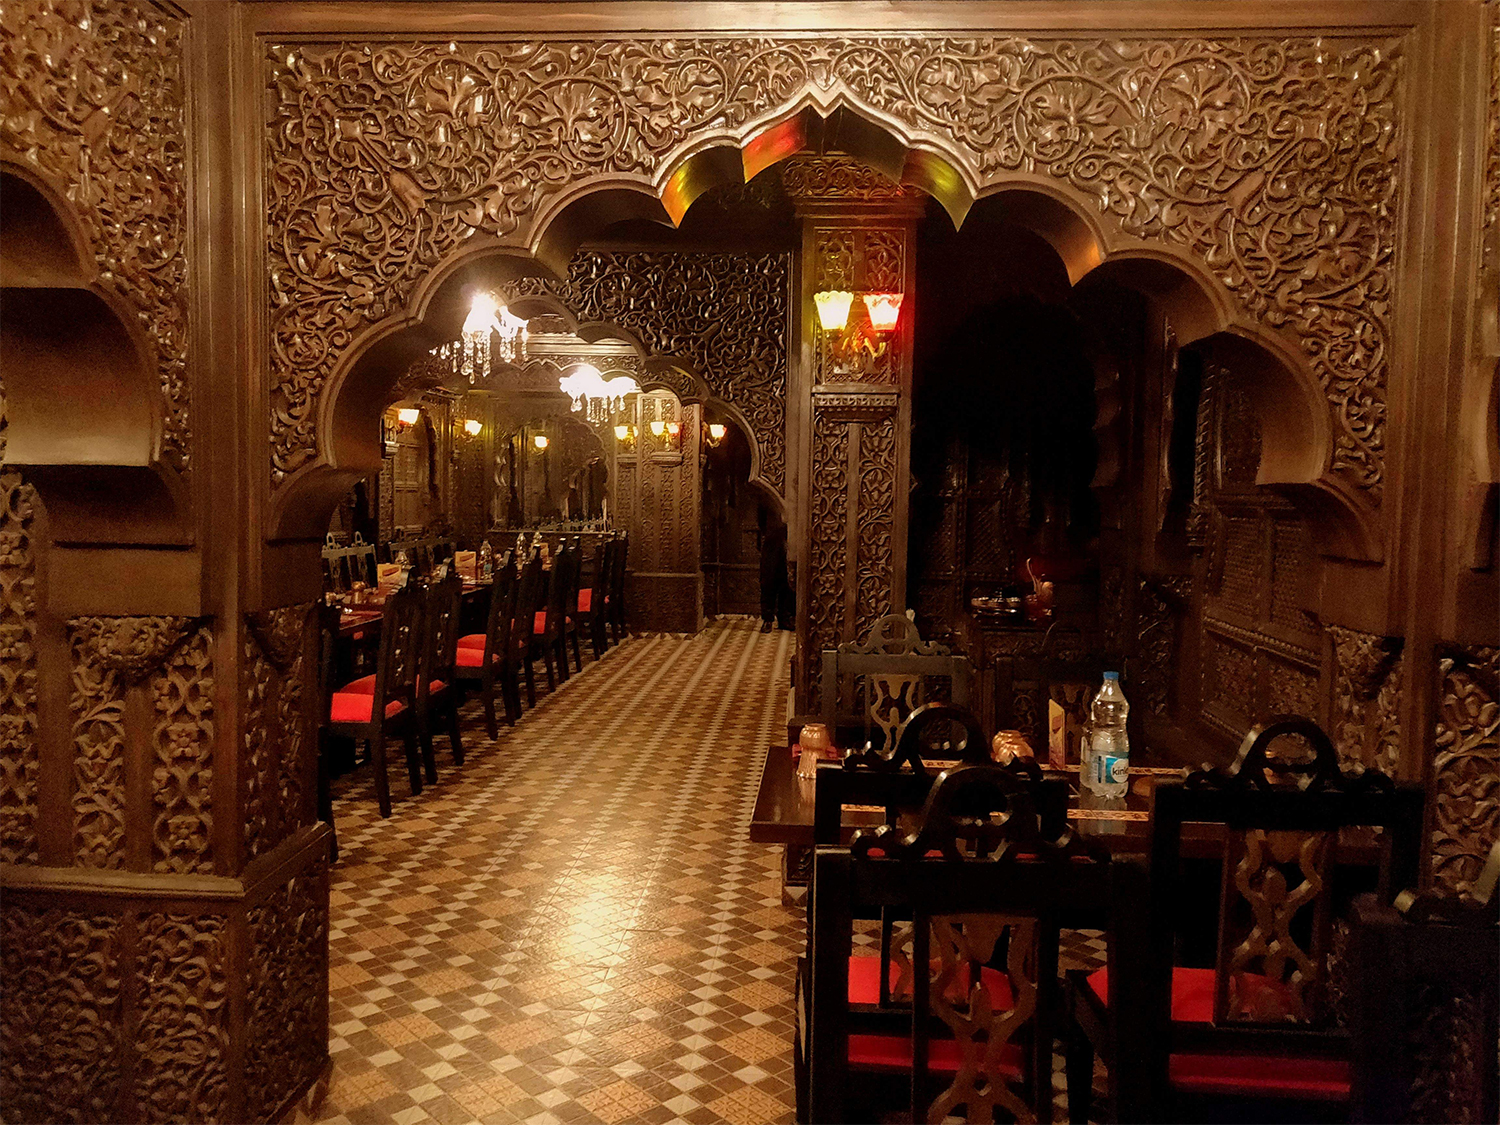 Oudh 1590 - Restaurants In Kolkata That Every Tourists Must Visit